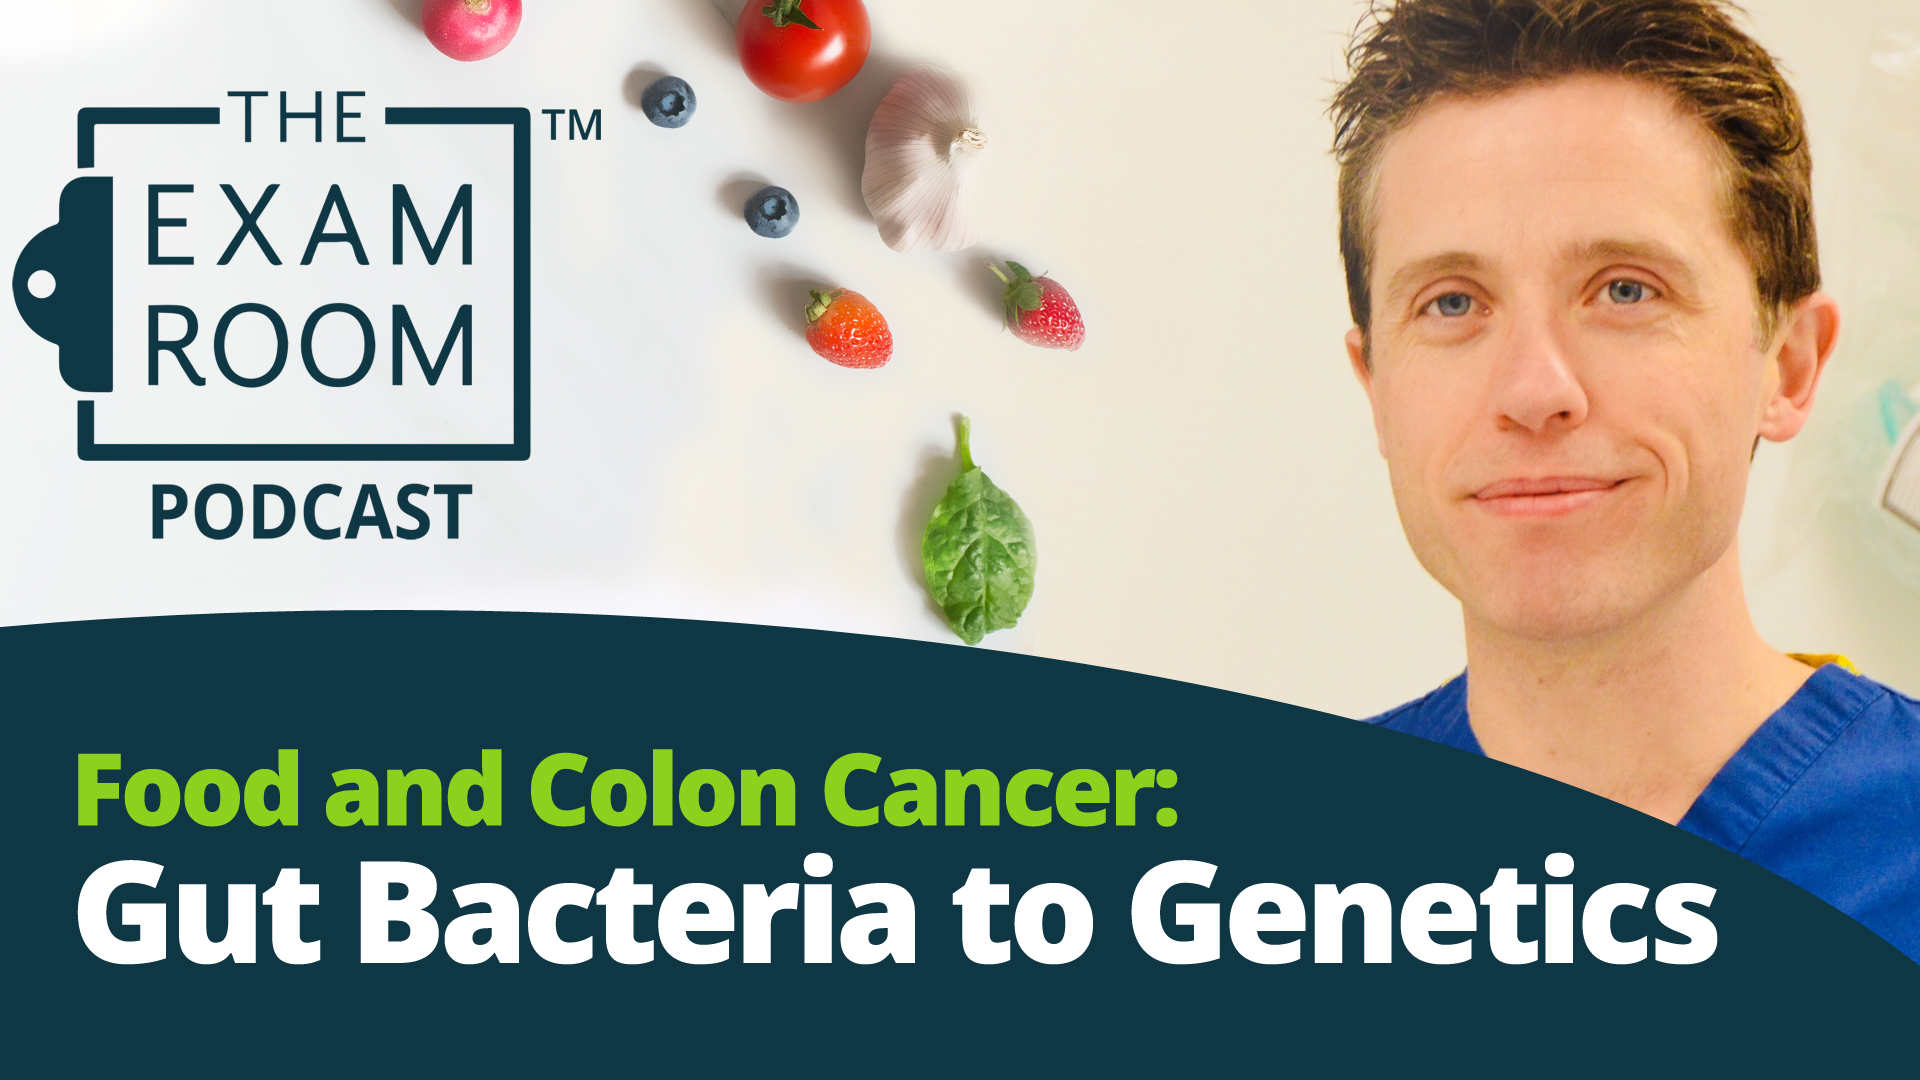 Food and Colon Cancer: Gut Bacteria to Genetics